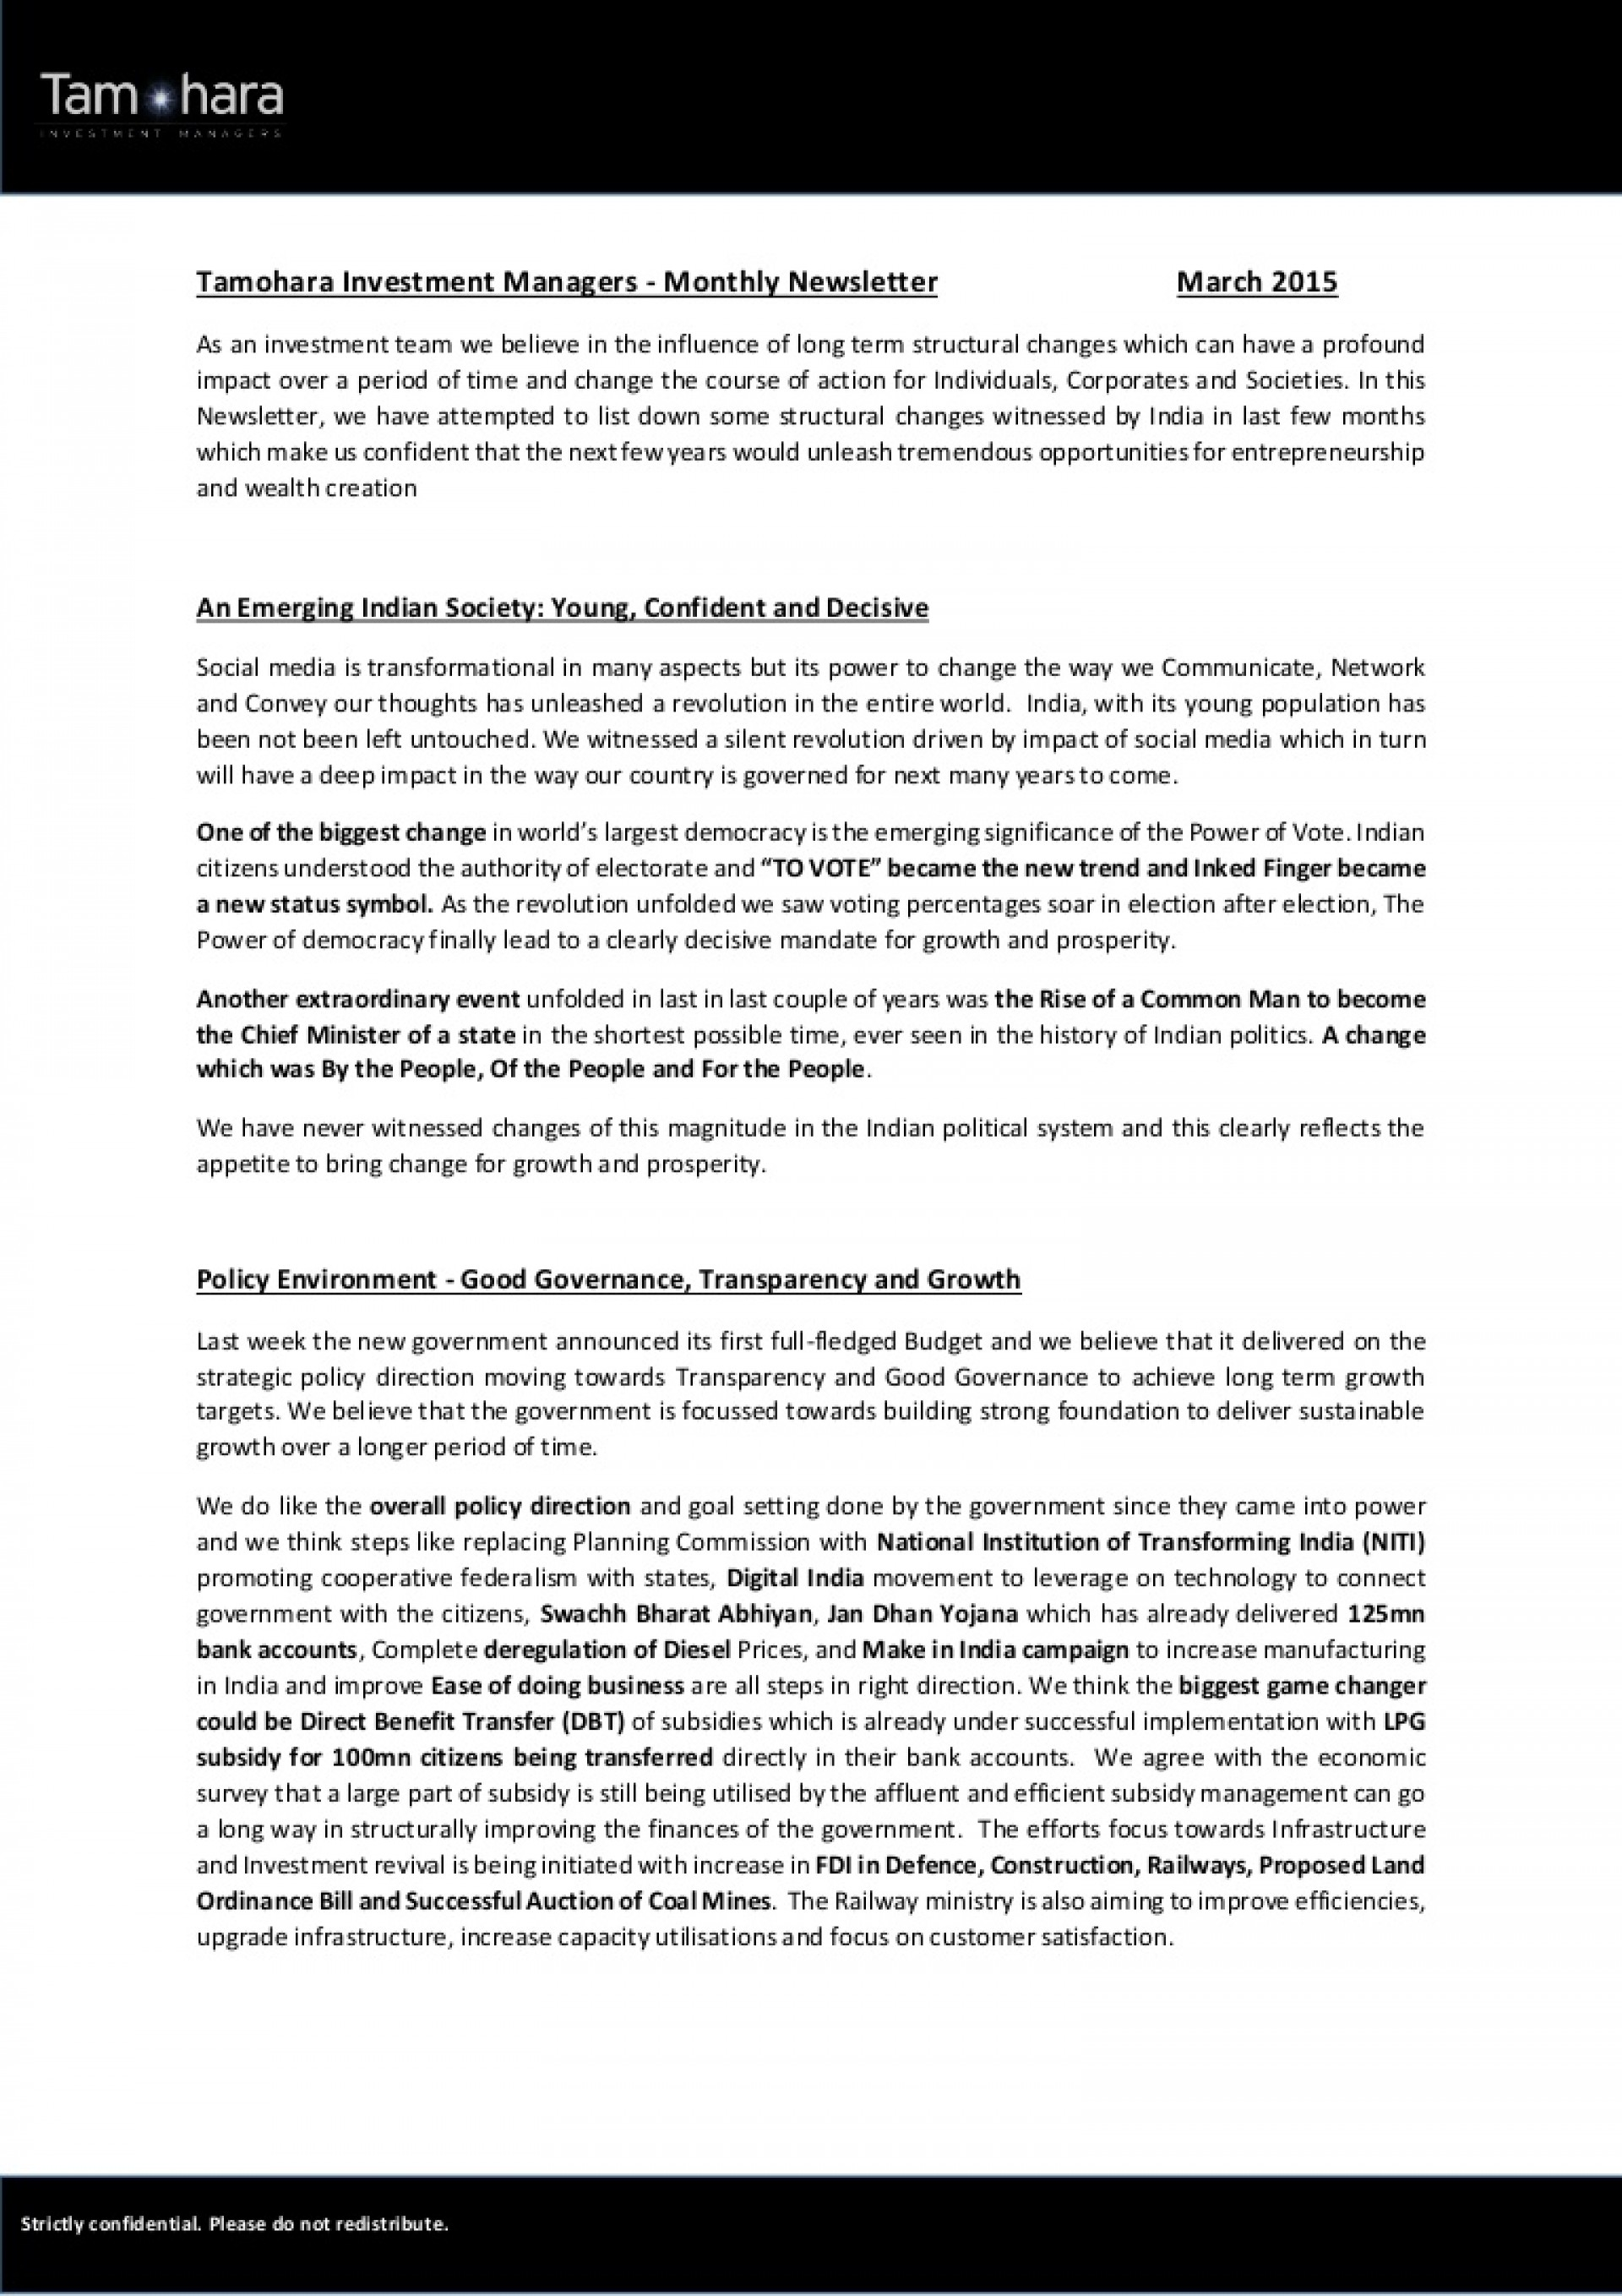 013 Essay Example Tamoharainvestmentnewsletter Mar2015 Conversion Gate01 Thumbnail How To Make Outstanding A Longer An Period Trick Mac On Google Docs My Generator 1920